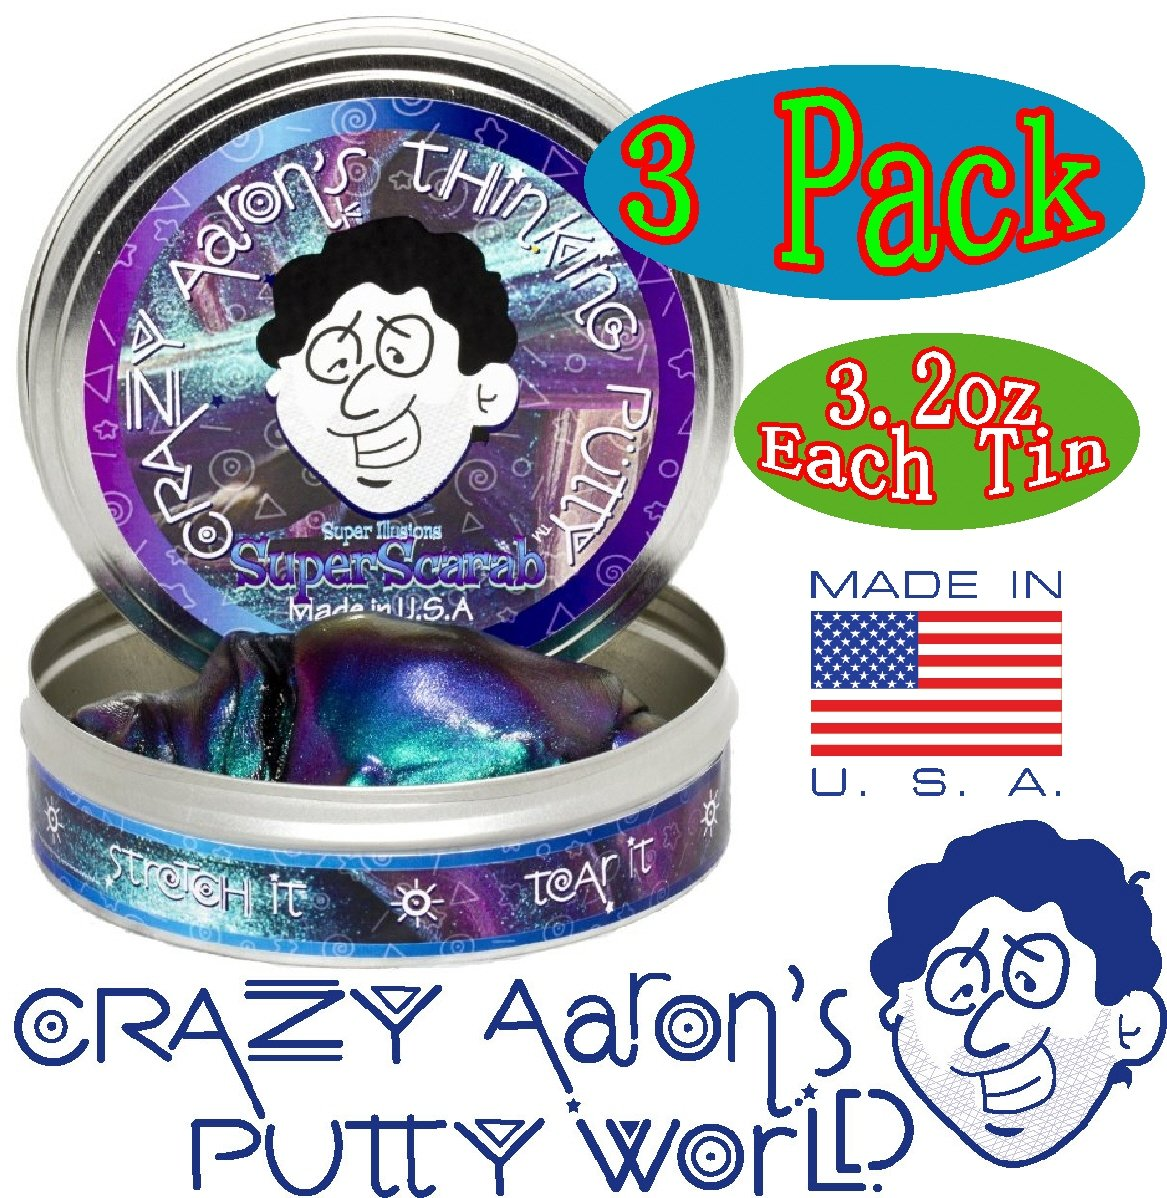 Crazy Aaron's Thinking Putty Super Illusions Super Scarab, Super Lava & Super Oil Slick Gift Set Bundle - 3 Pack by Crazy Aaron's (Image #2)